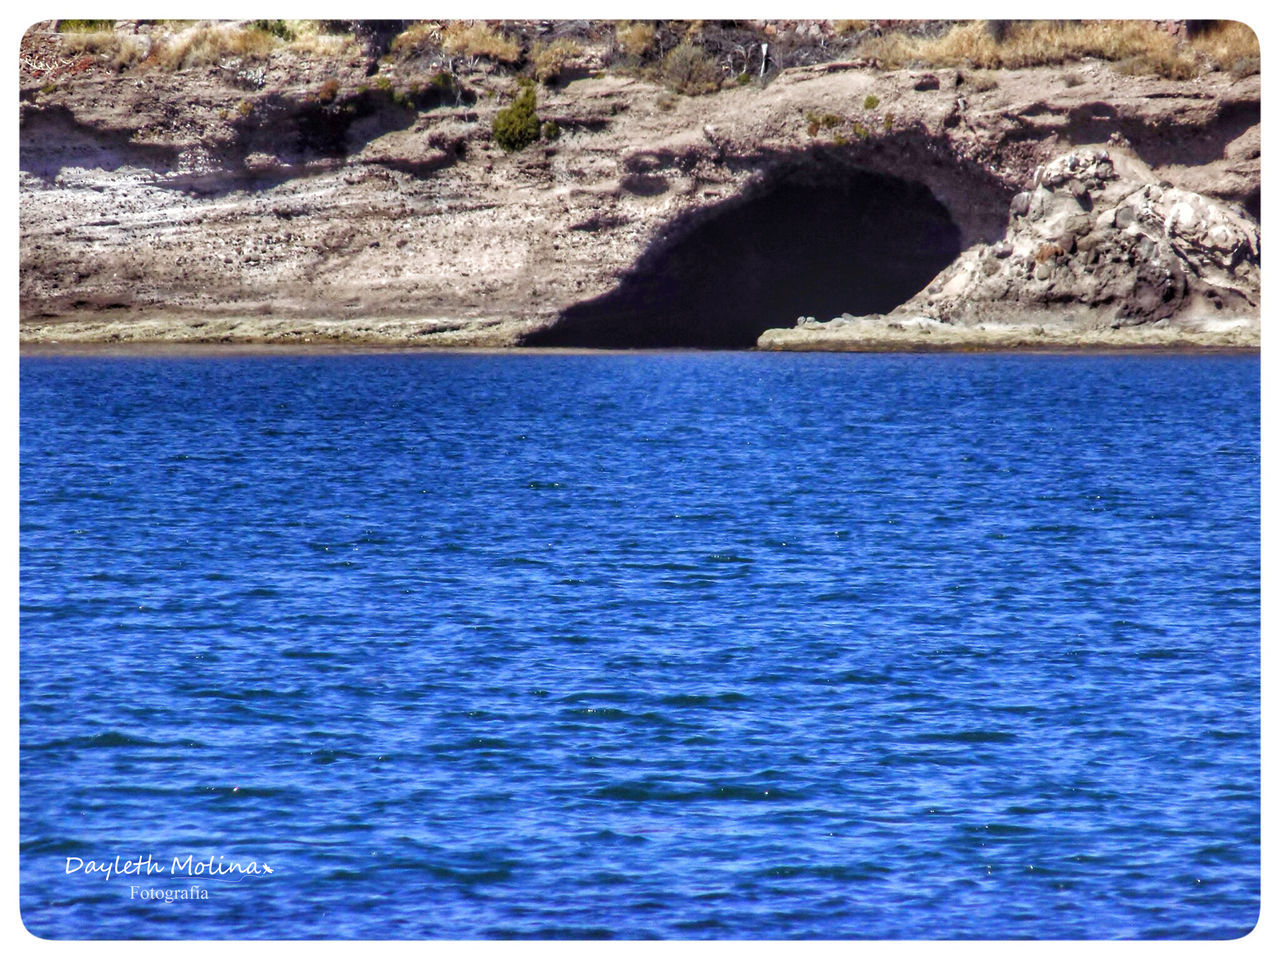 Beach Beautiful Beautiful Nature Beauty In Nature Beauty In Nature Blue Blue Sea Close-up Cueva Day EyeEm Nature Lover Eyemphotography Nature No People Outdoors Playa Relax Relaxing Moments Rock Formation Scenics Sea Sonora Tranquility Water Waterfront